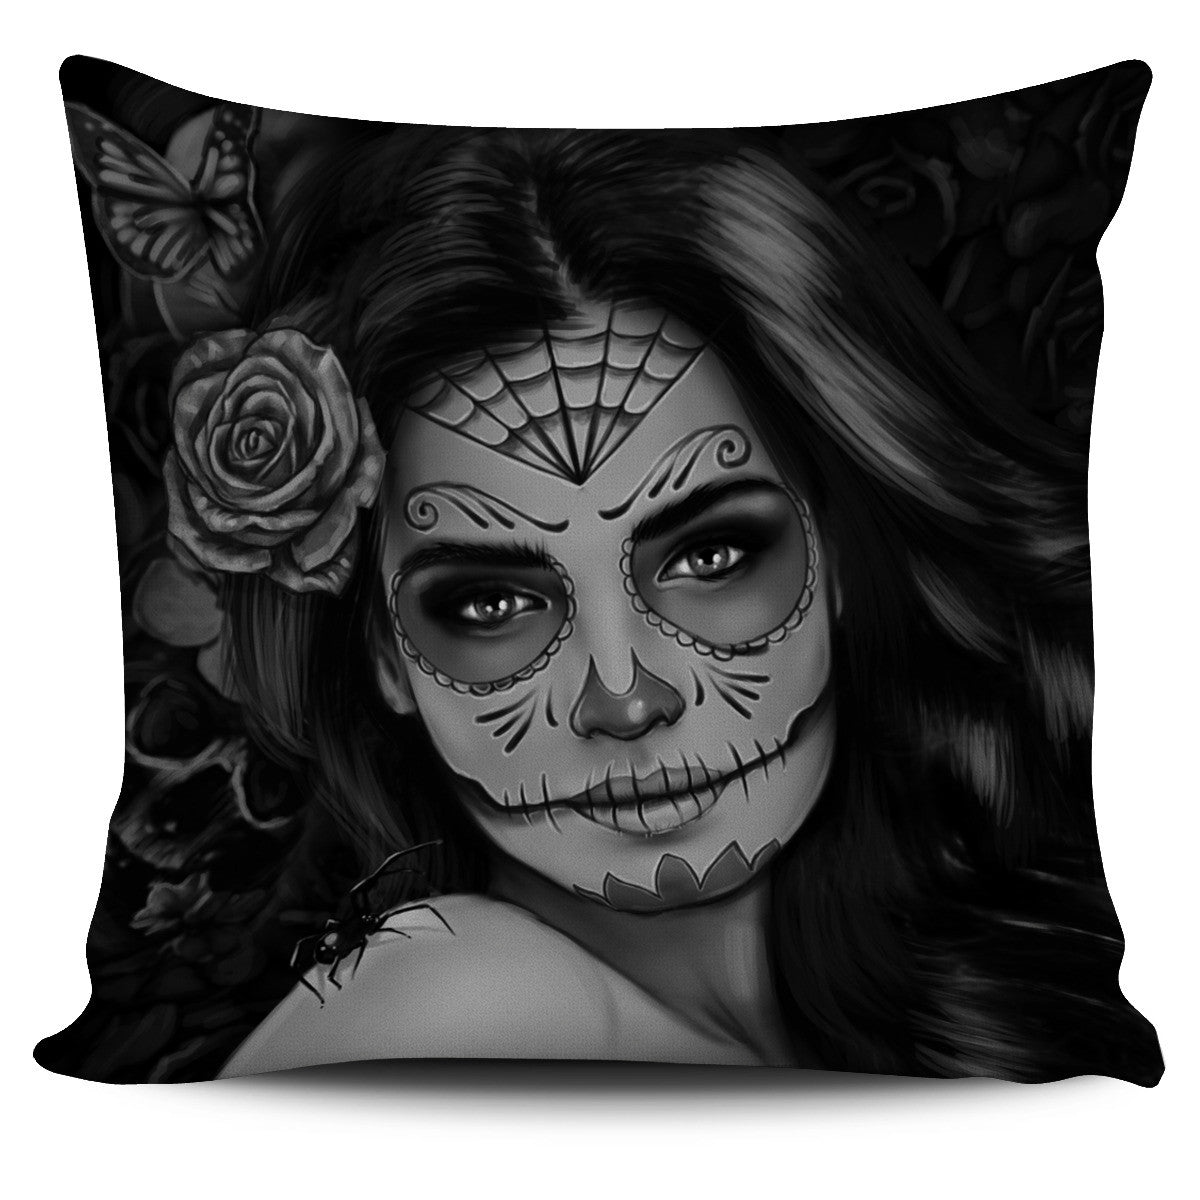 Black/White Calavena Girl Pillow Cover